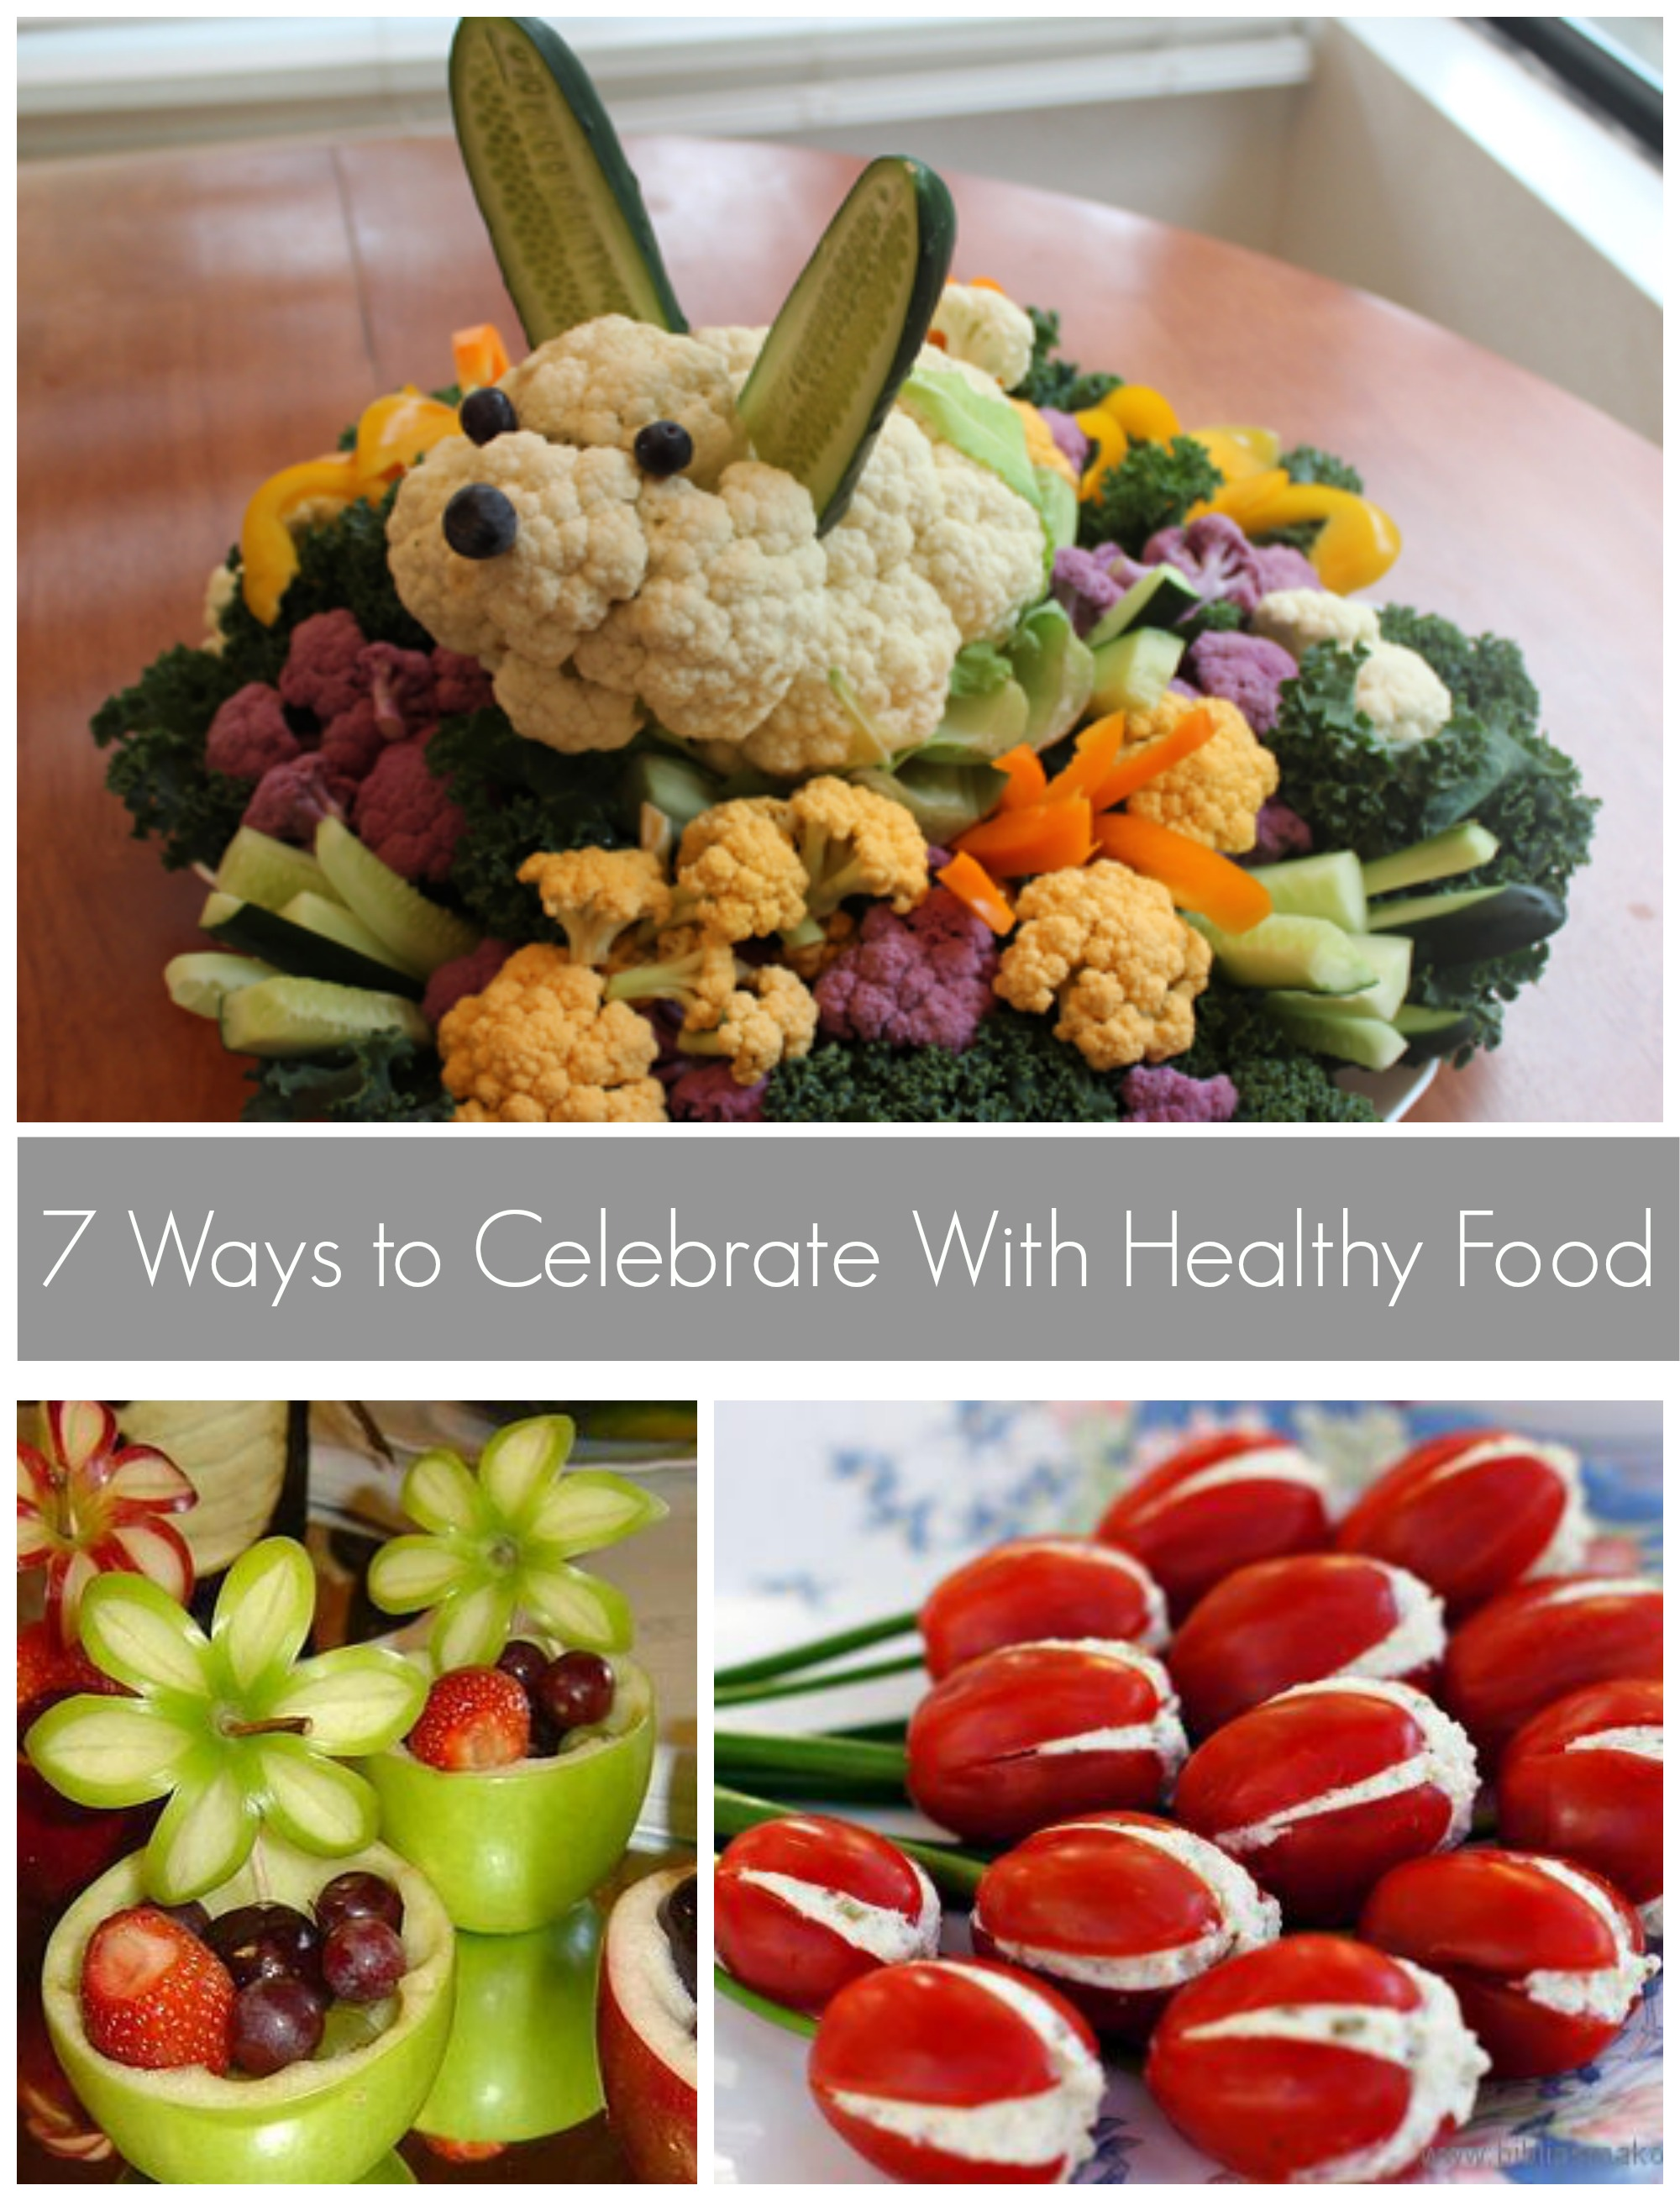 7 Ways To Celebrate Easter And Spring With Healthy Food